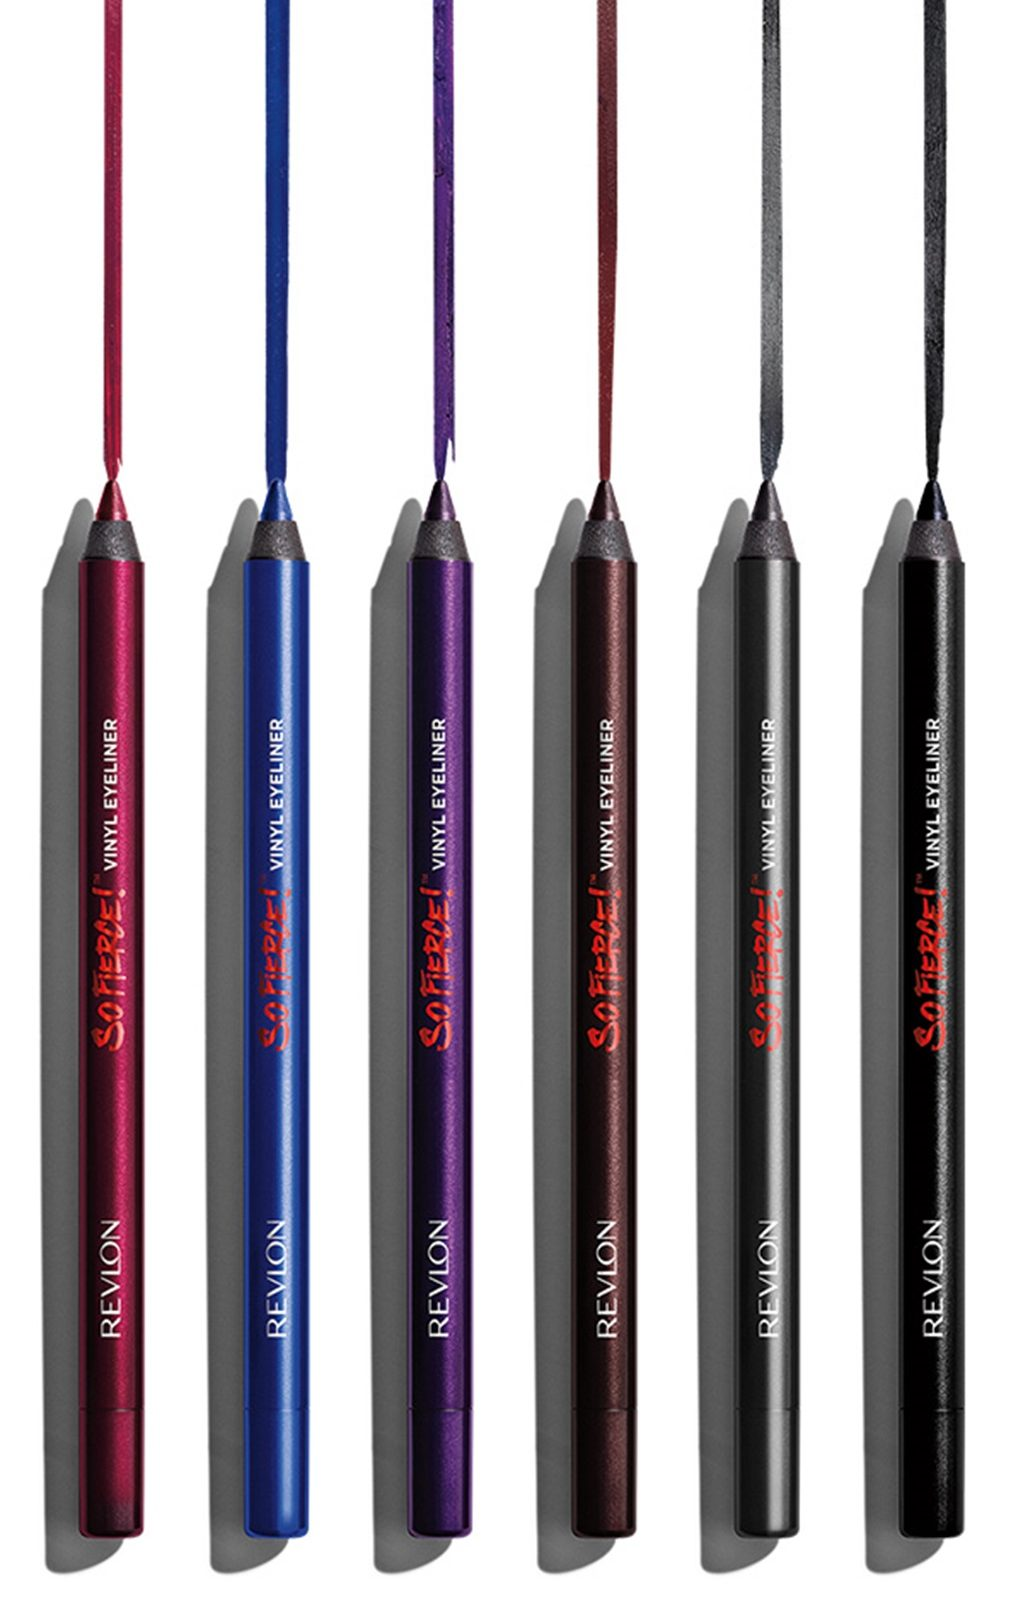 Revlon So Fierce Vinyl Eyeliner